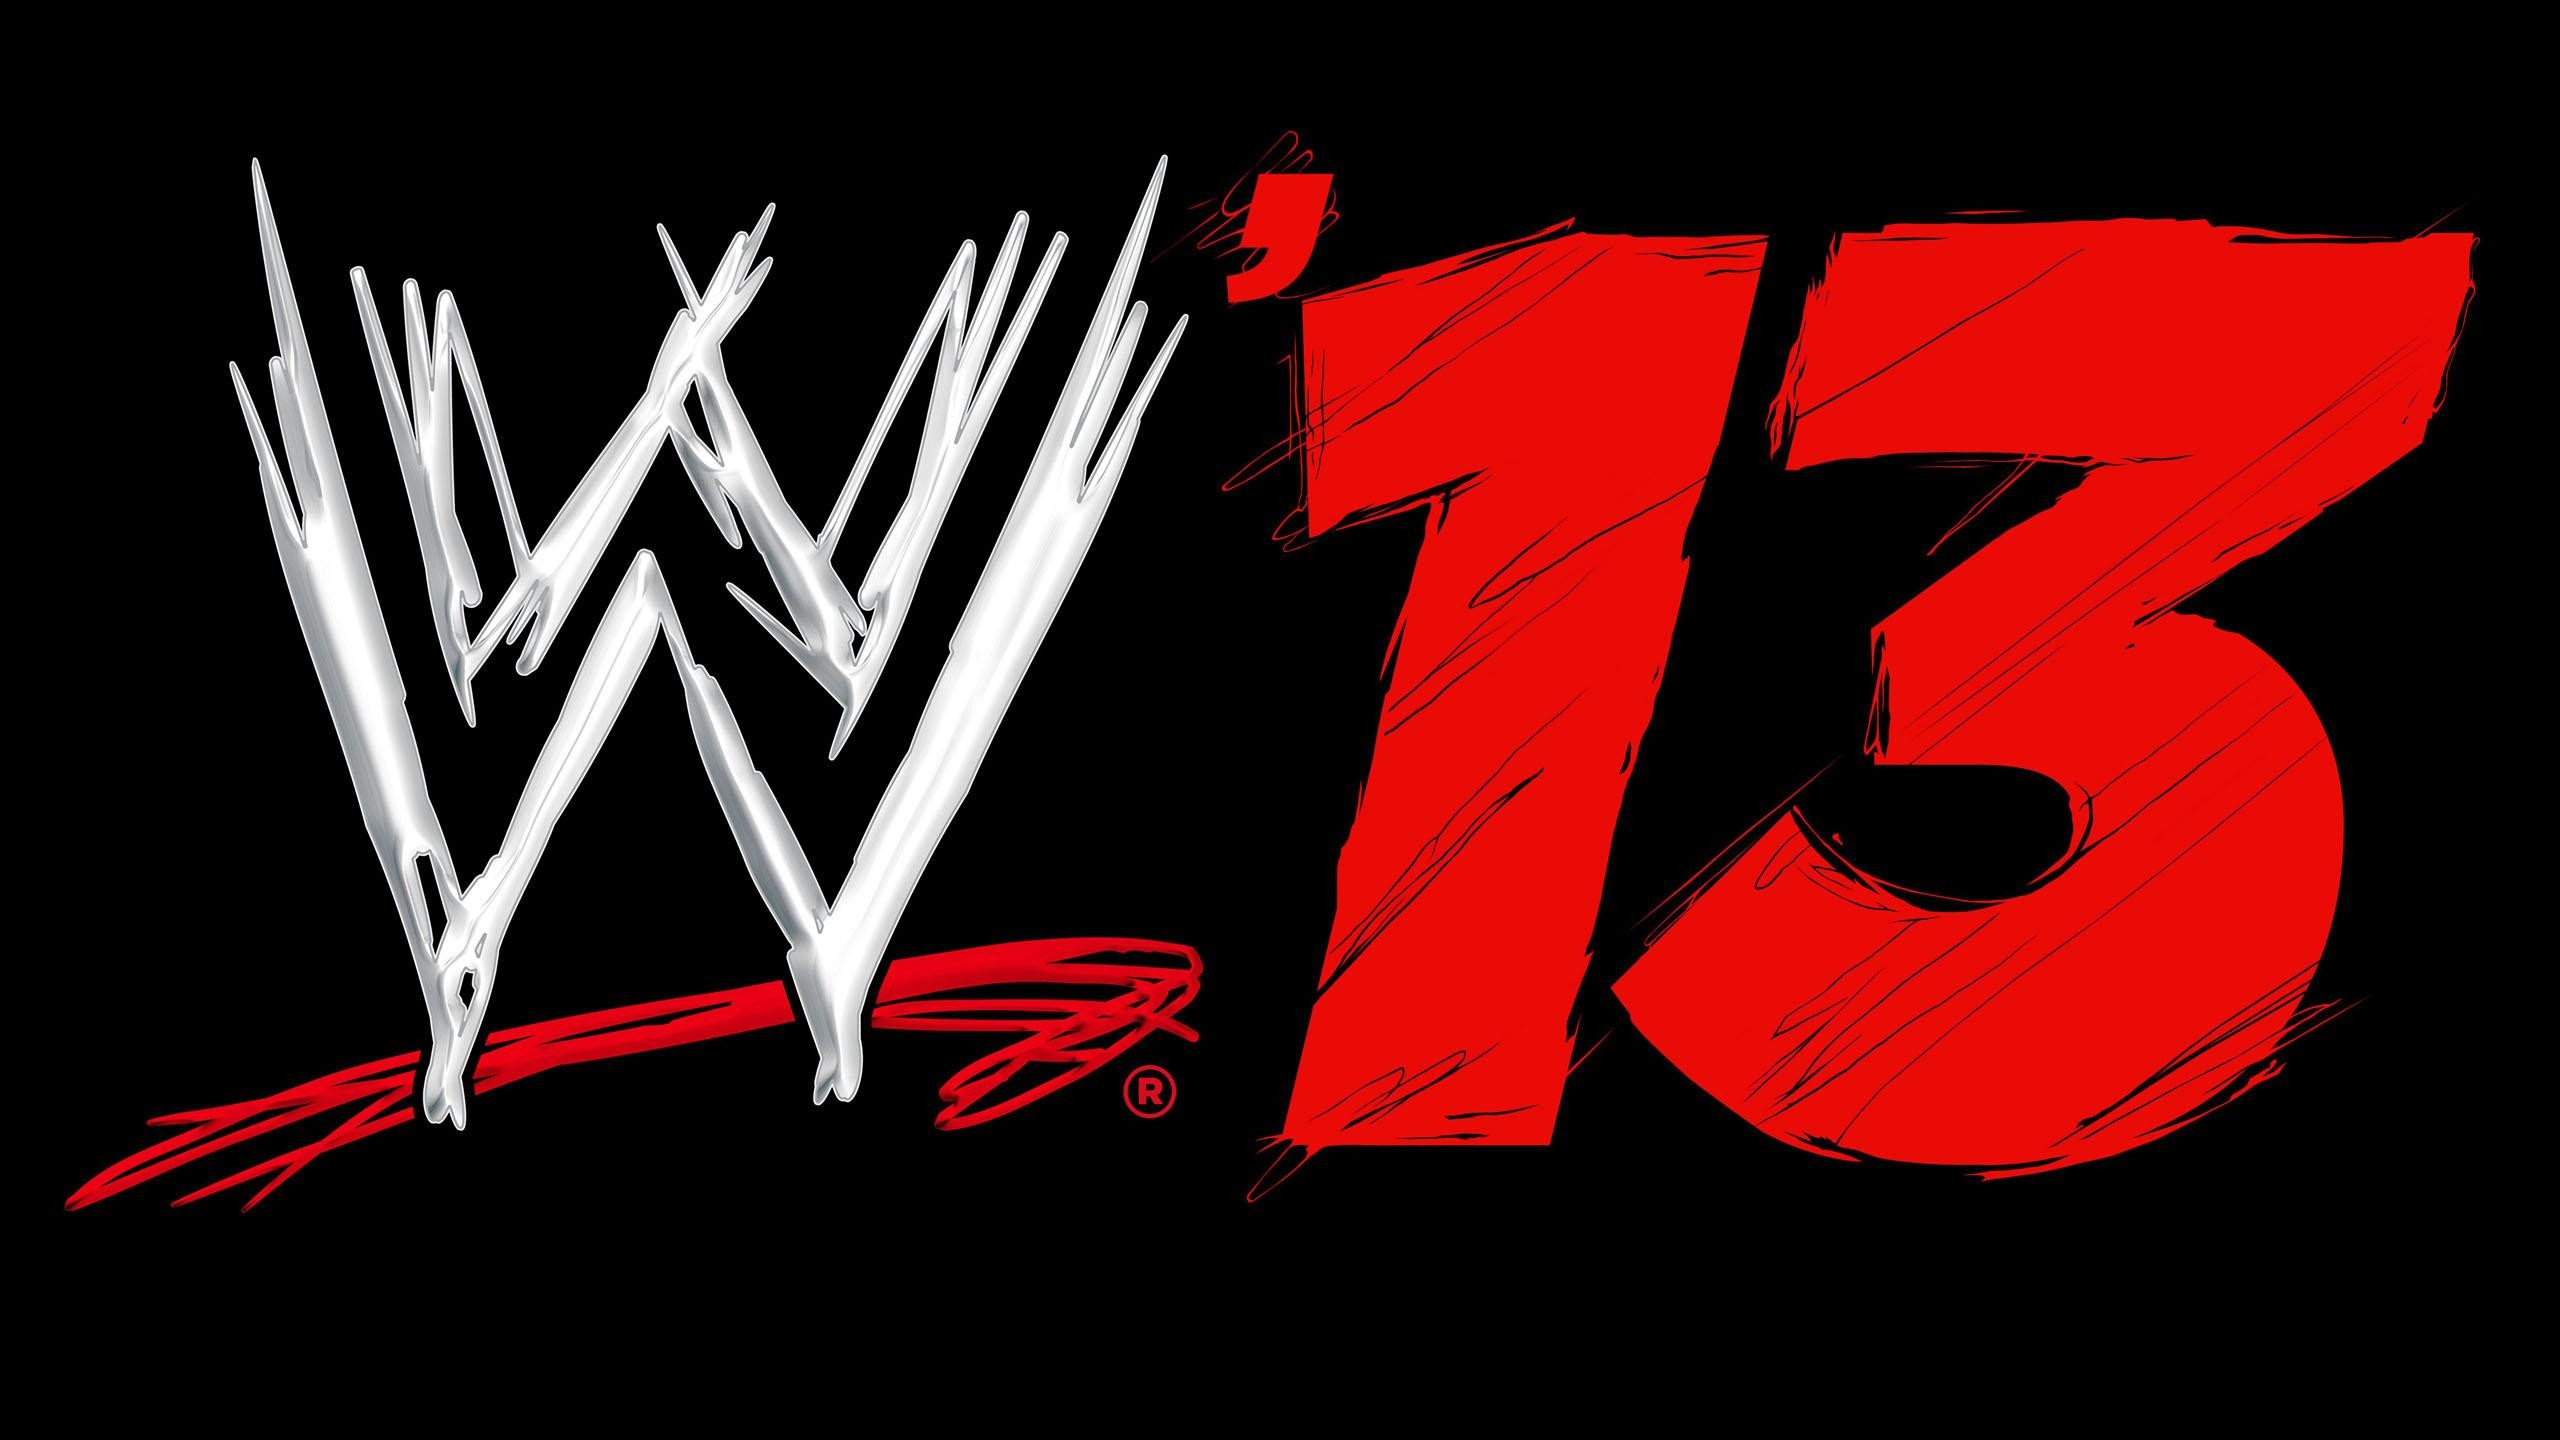 2560x1440 WWE-logo-black-skiing-freestyle-resolution-HD-wallpapers